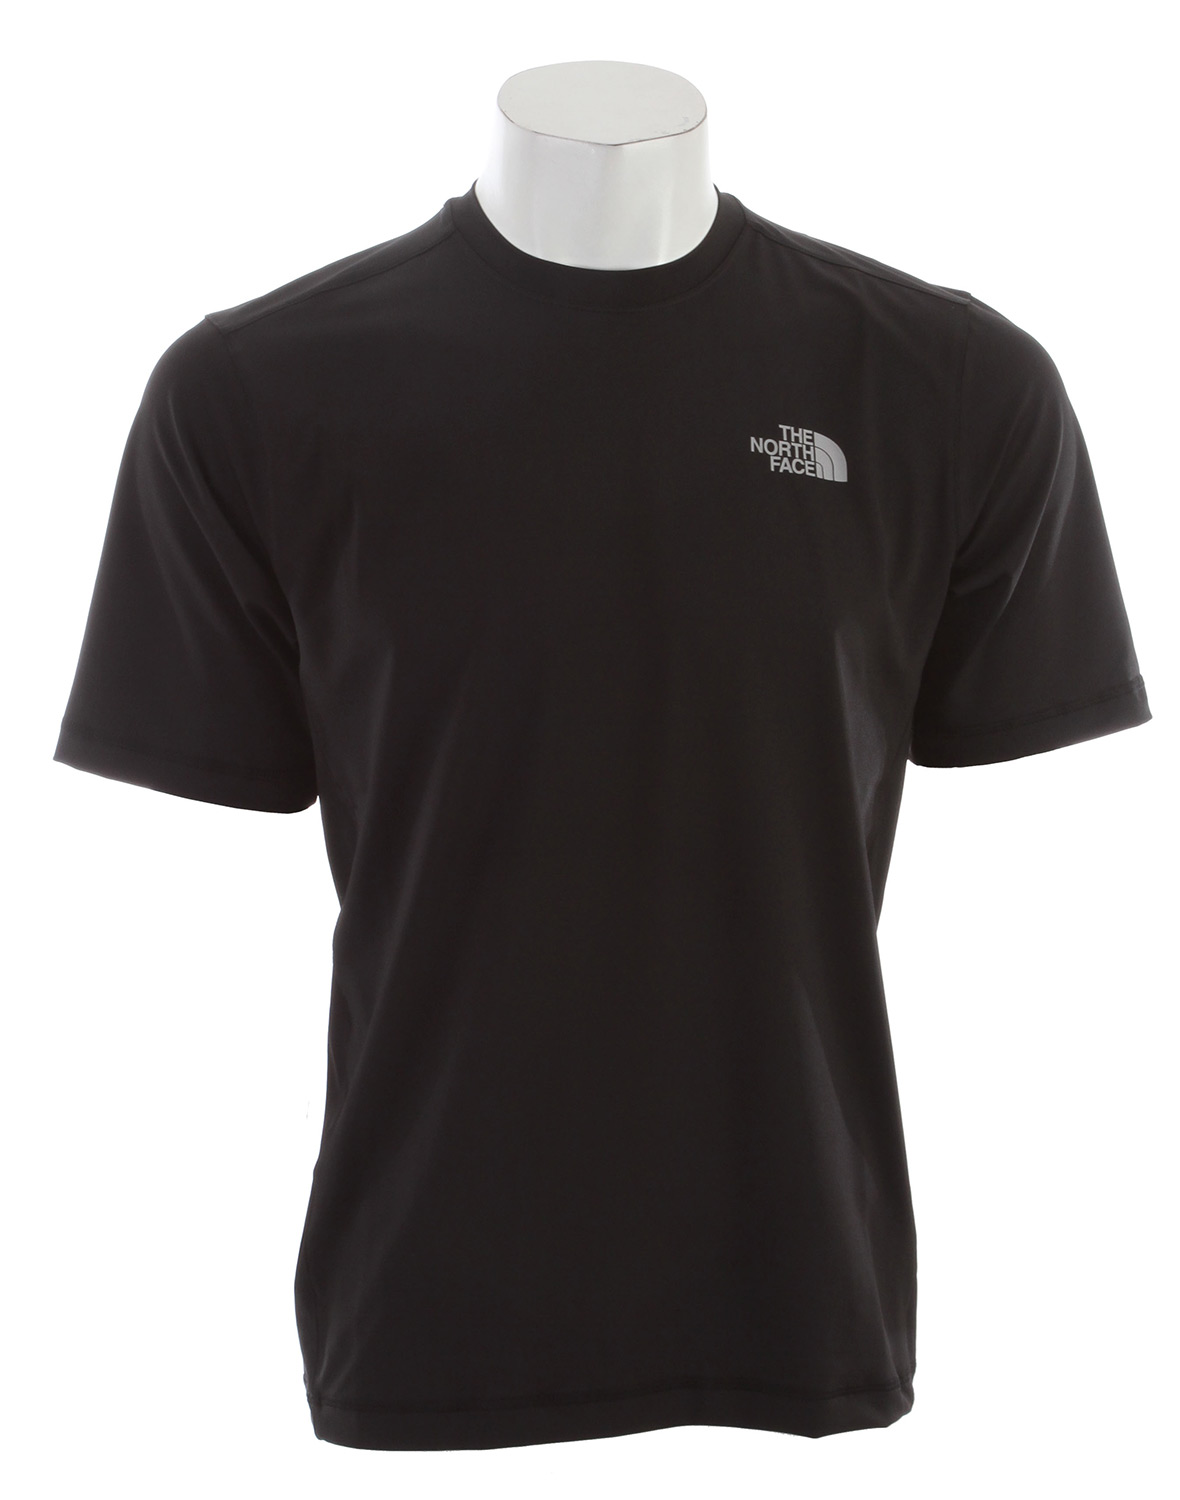 "A lightweight, quick-drying, stretch short sleeve with sun protection for all-day water adventure. Key Features of The North Face Class V Water Shirt: Soft quick-drying four-way stretch knit Quick-drying performance Flat-locked stitching for comfort and reduced abrasion Relaxed fit Ultraviolet Protection Factor (UPF) 50 Avg weight: 210 g (7 oz) Center back: 27"" Fabric: 75D 208 g/m2 (7.33 oz/yd2) 82% polyester 12% elastane jersey - $23.95"